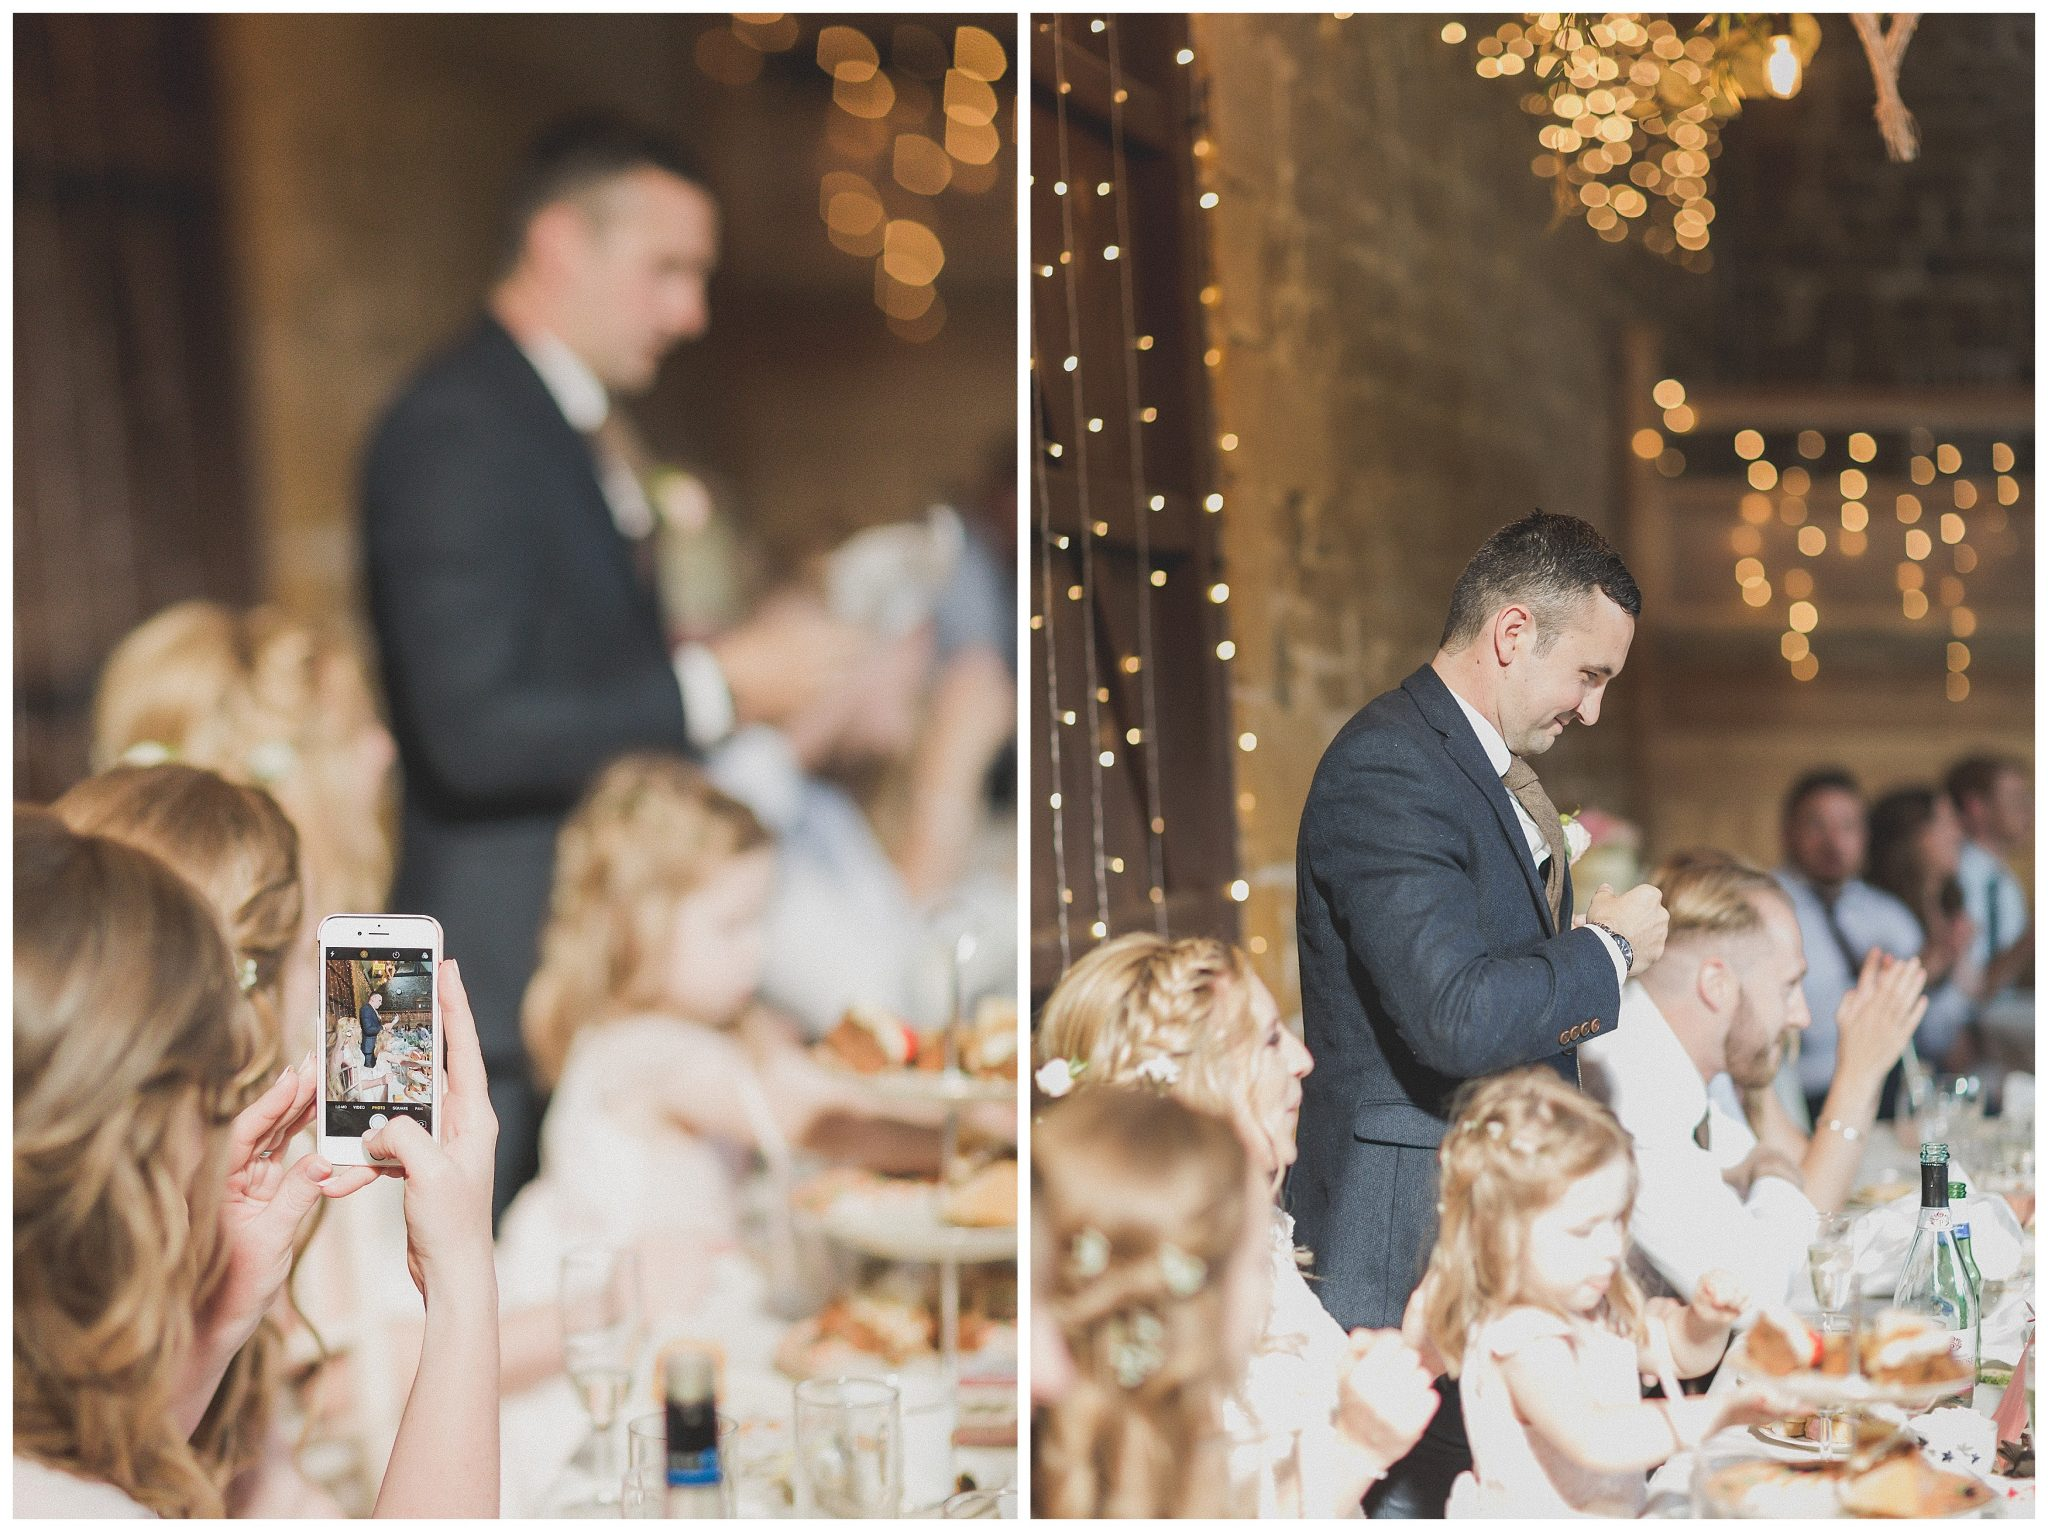 Groom doing his speech and someone taking a photo of him